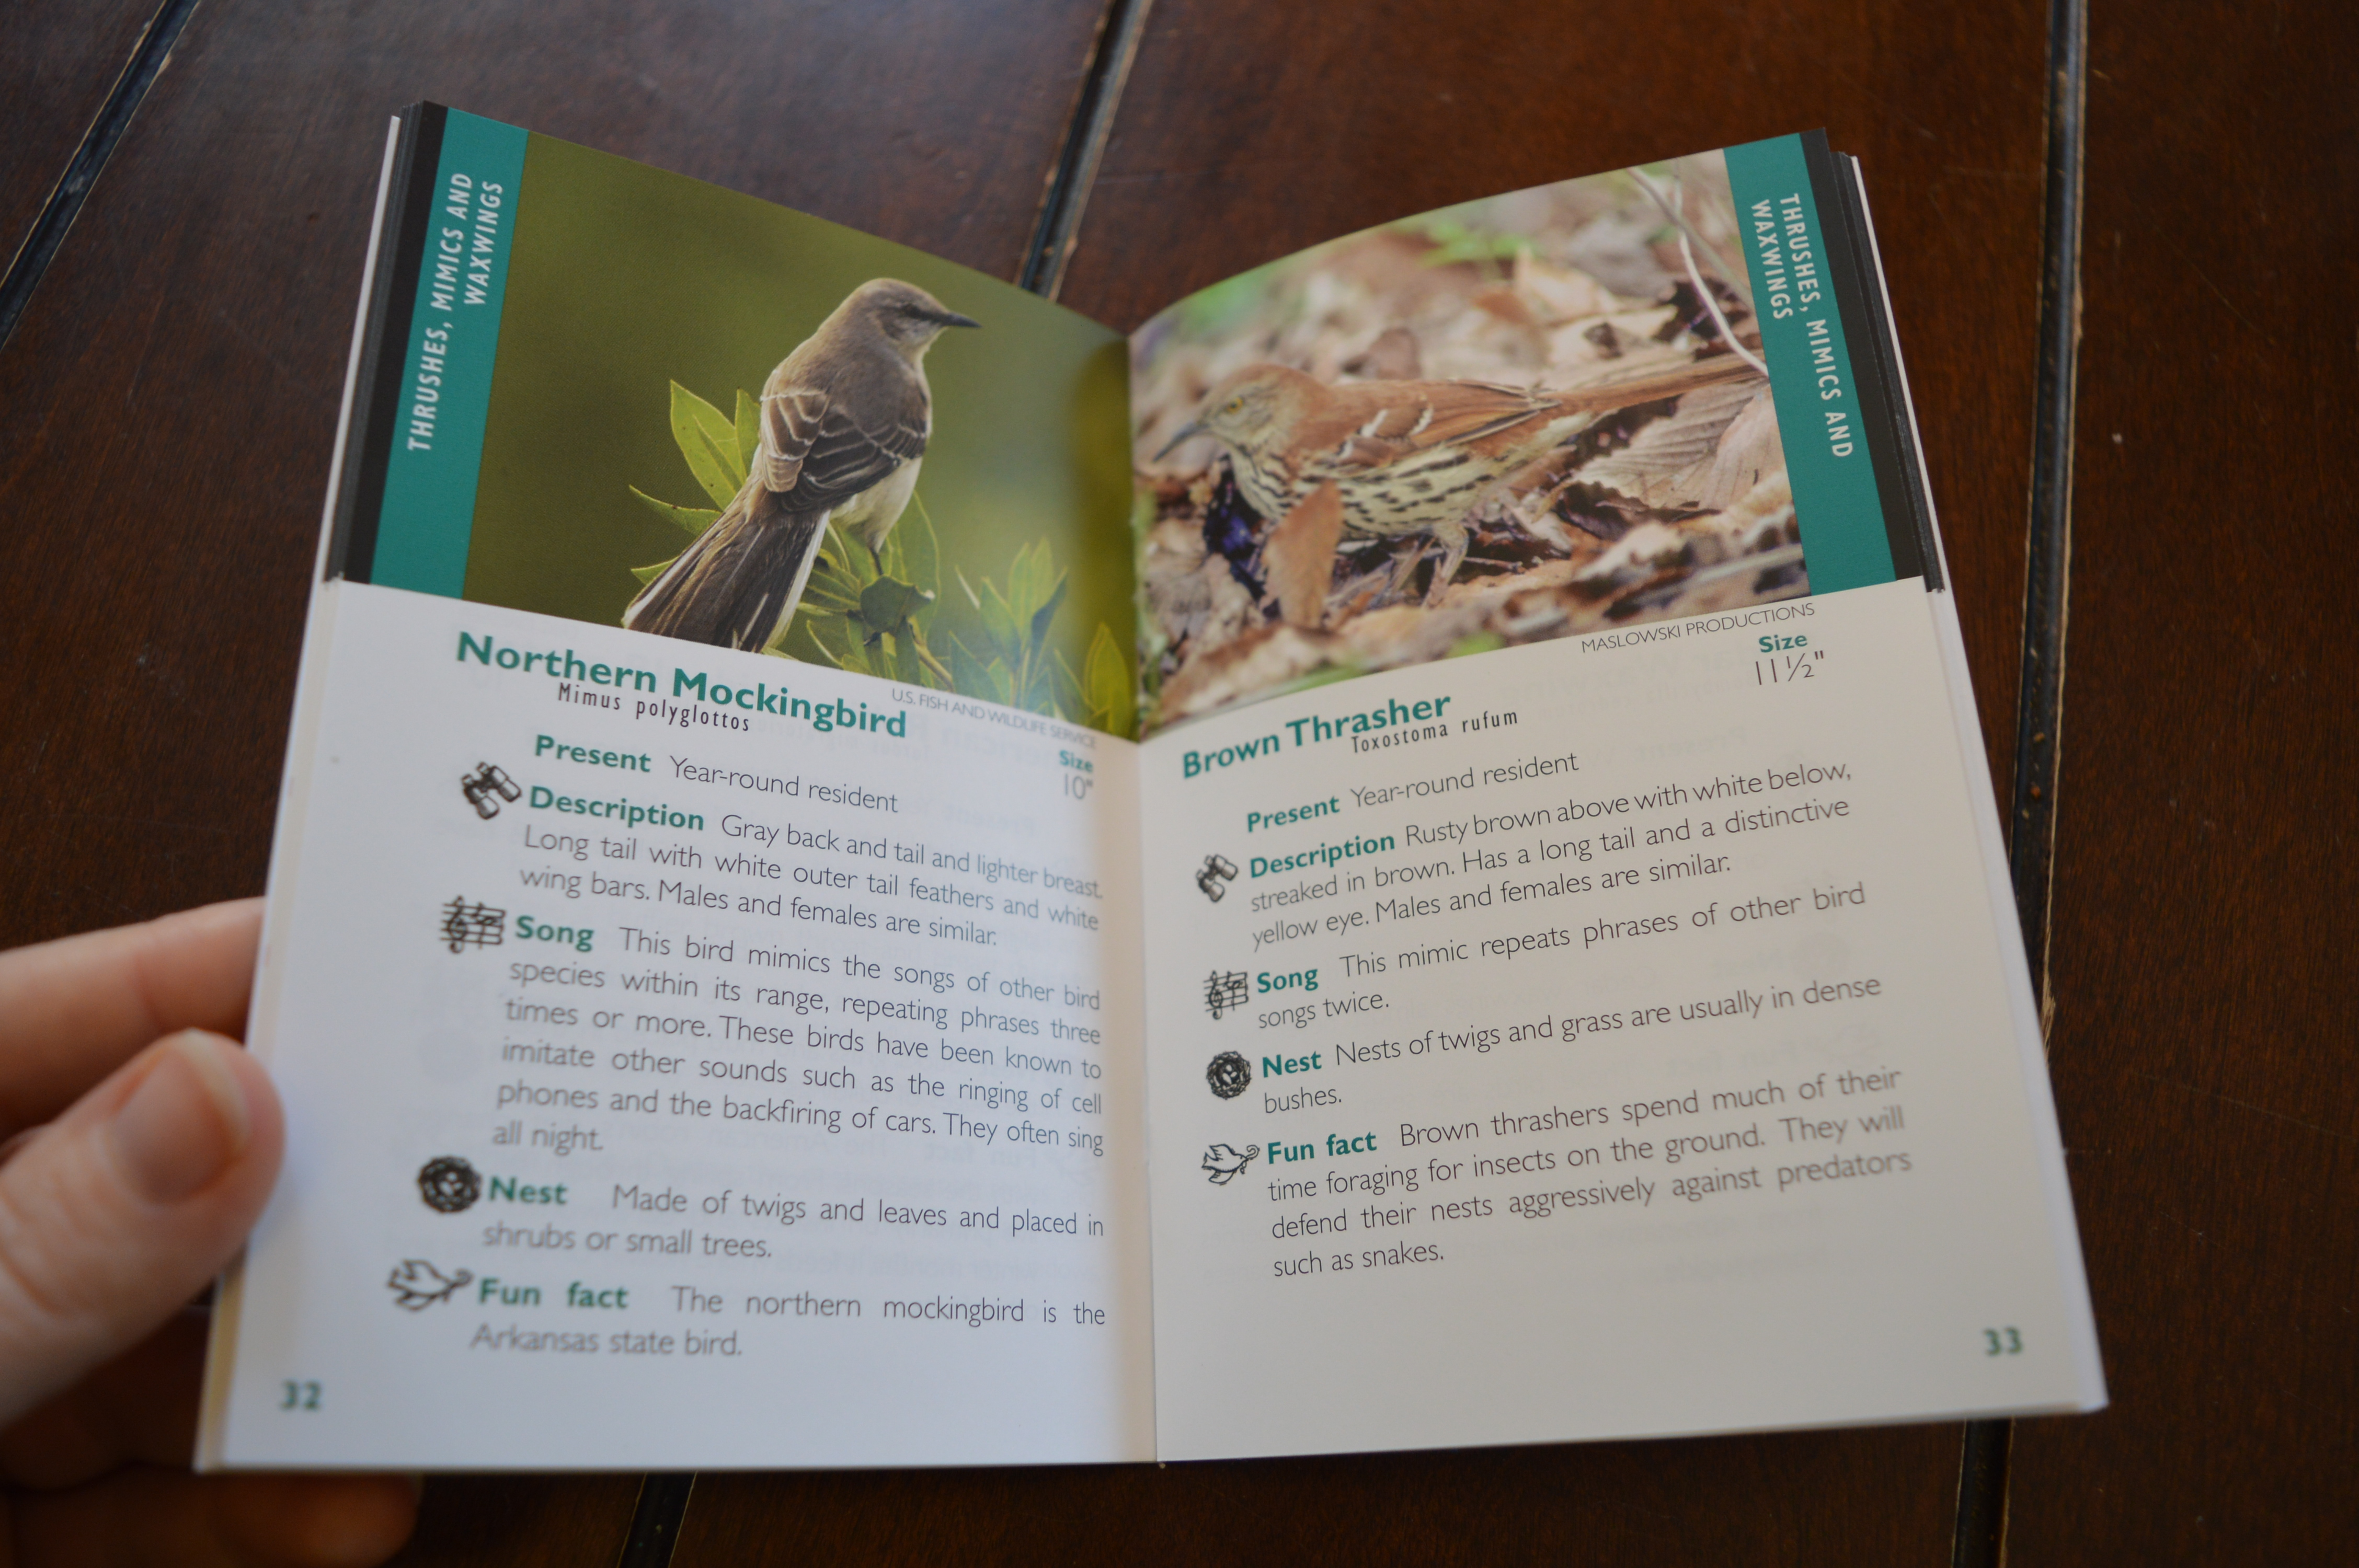 Finding Cheap Or FREE Resources For Bird Nature Study